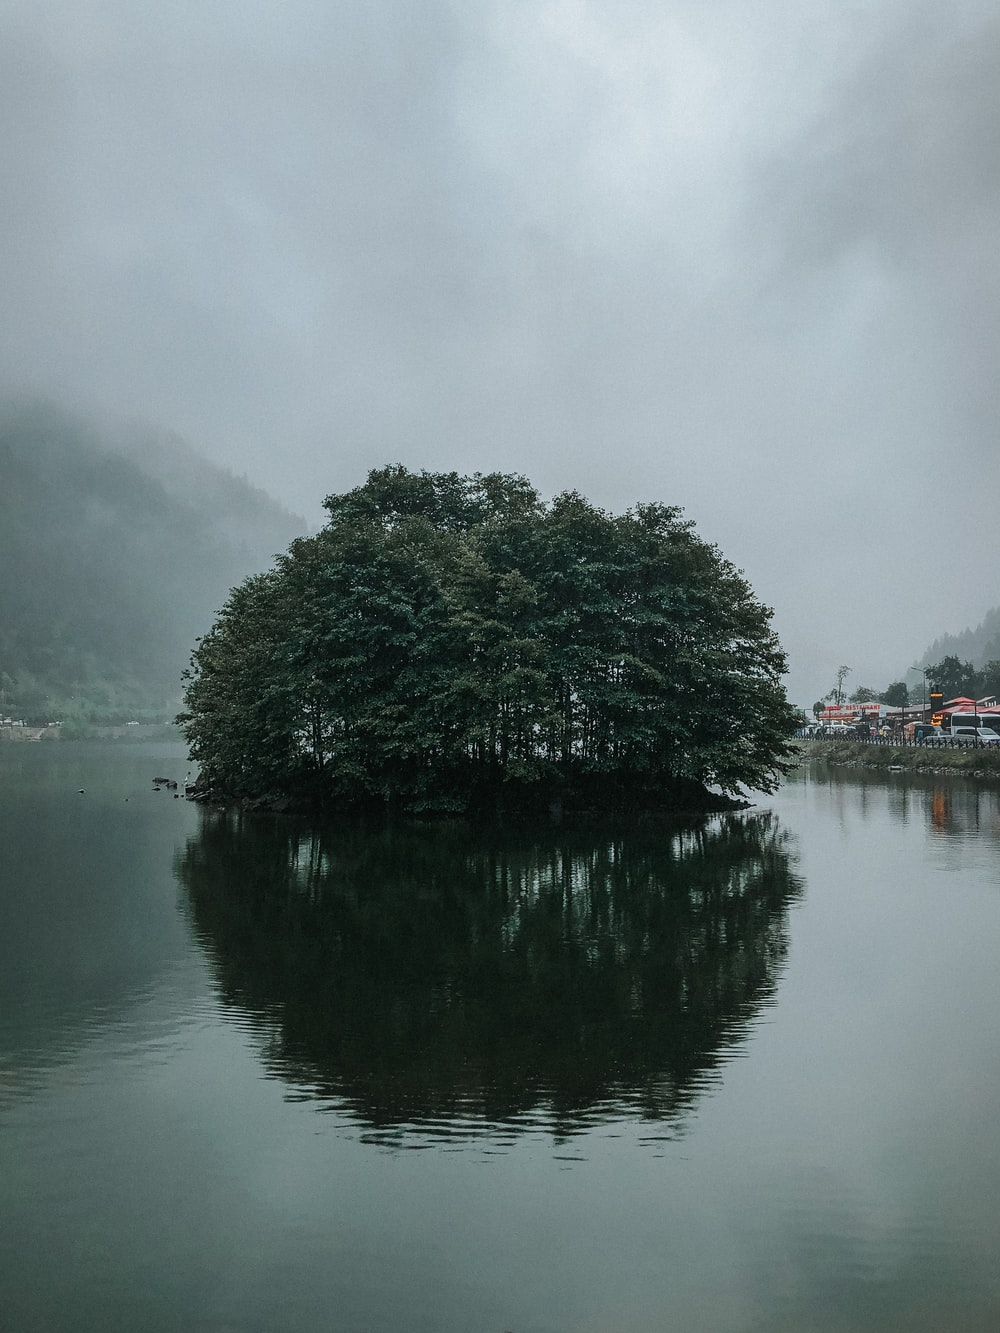 green trees near body of water under cloudy sky during daytime